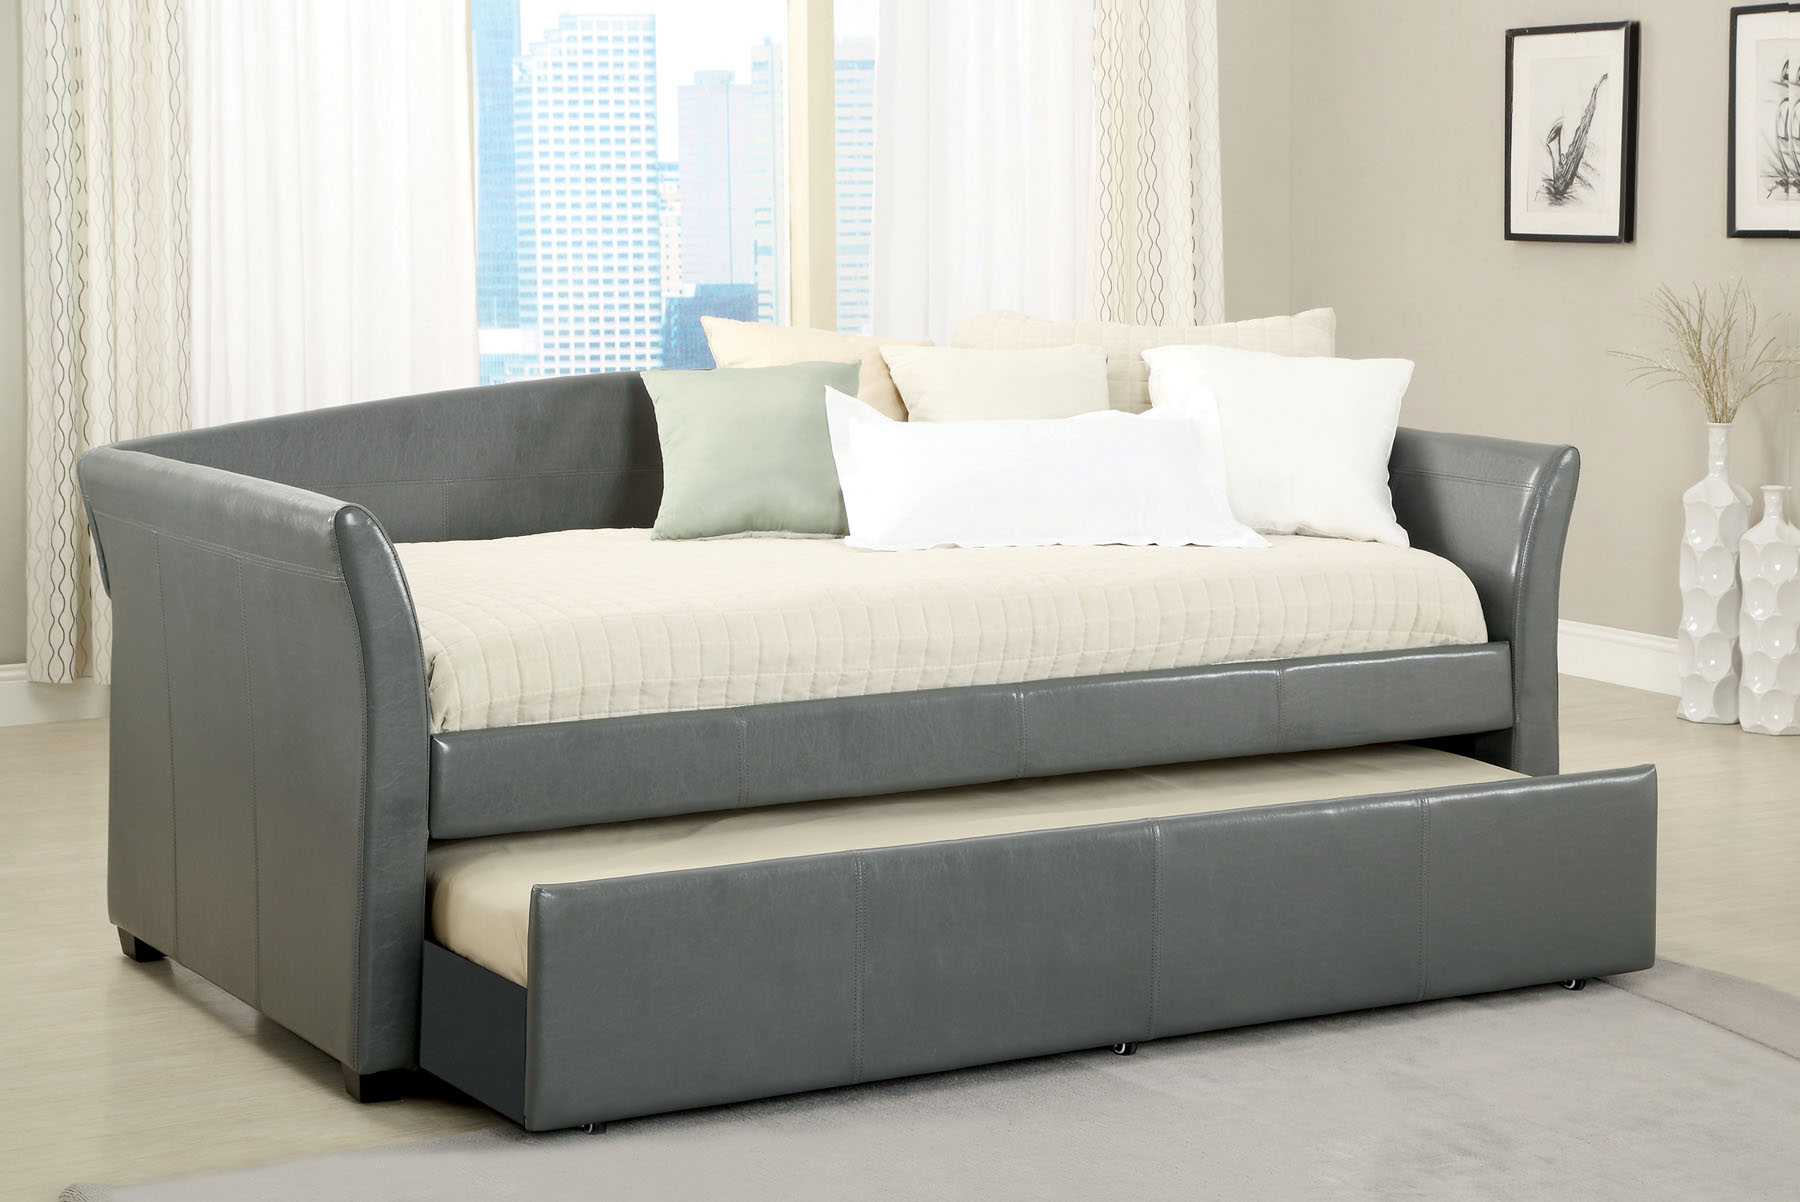 Faux Leather Daybed CM1956GY  Furniture Mattress Los